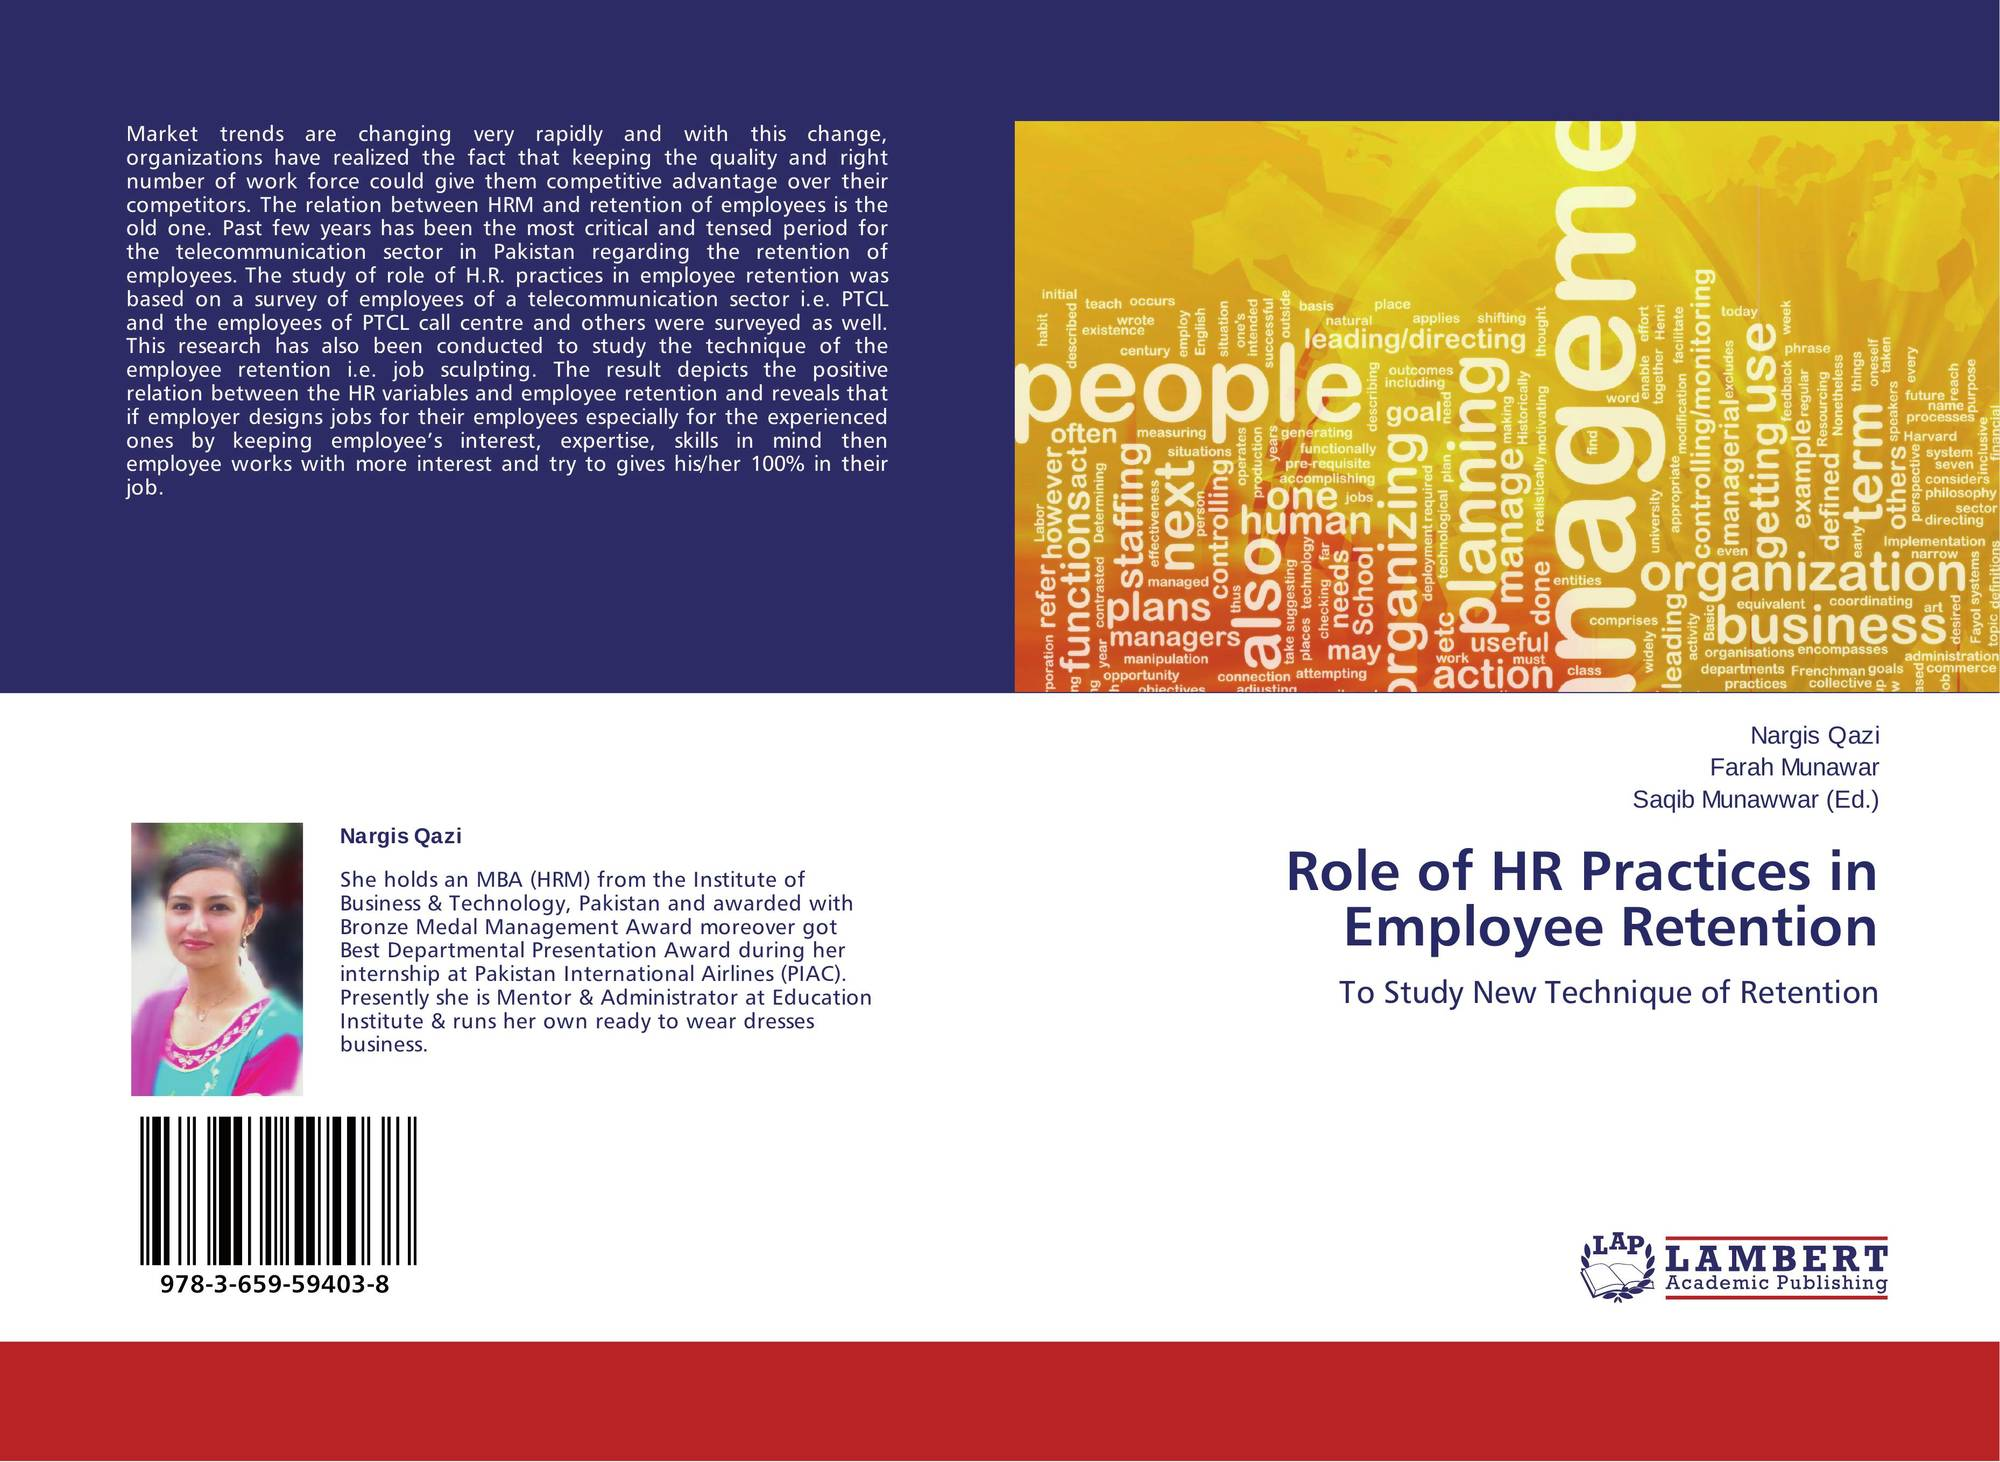 the role of hr practices in Role of hr in knowledge management  so, in summary the following associations can reasonably be made: information relates to description, definition, or perspective (what, who, when, where) knowledge comprises strategy, practice, method, or approach (how.